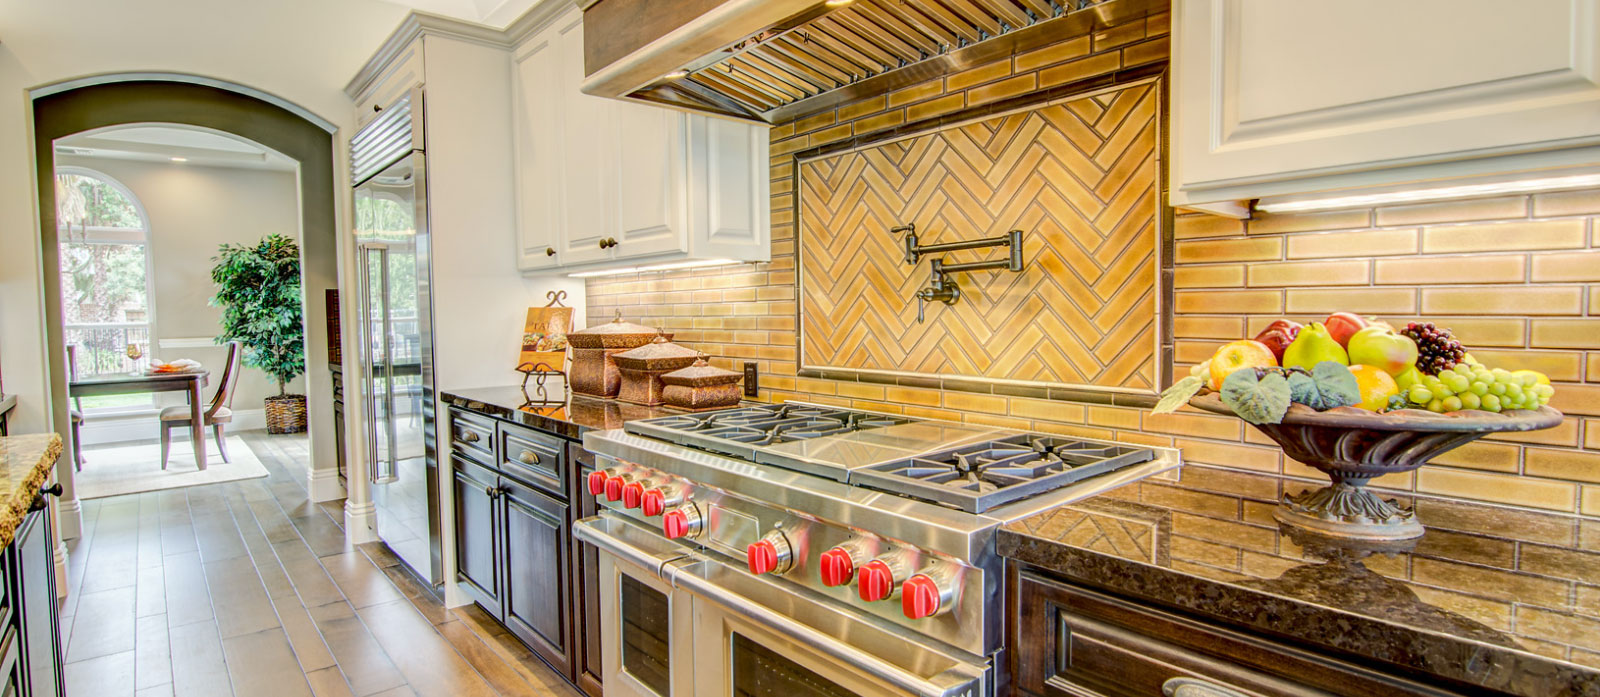 stove top and its surroundings  in a kitchen in a custom built home